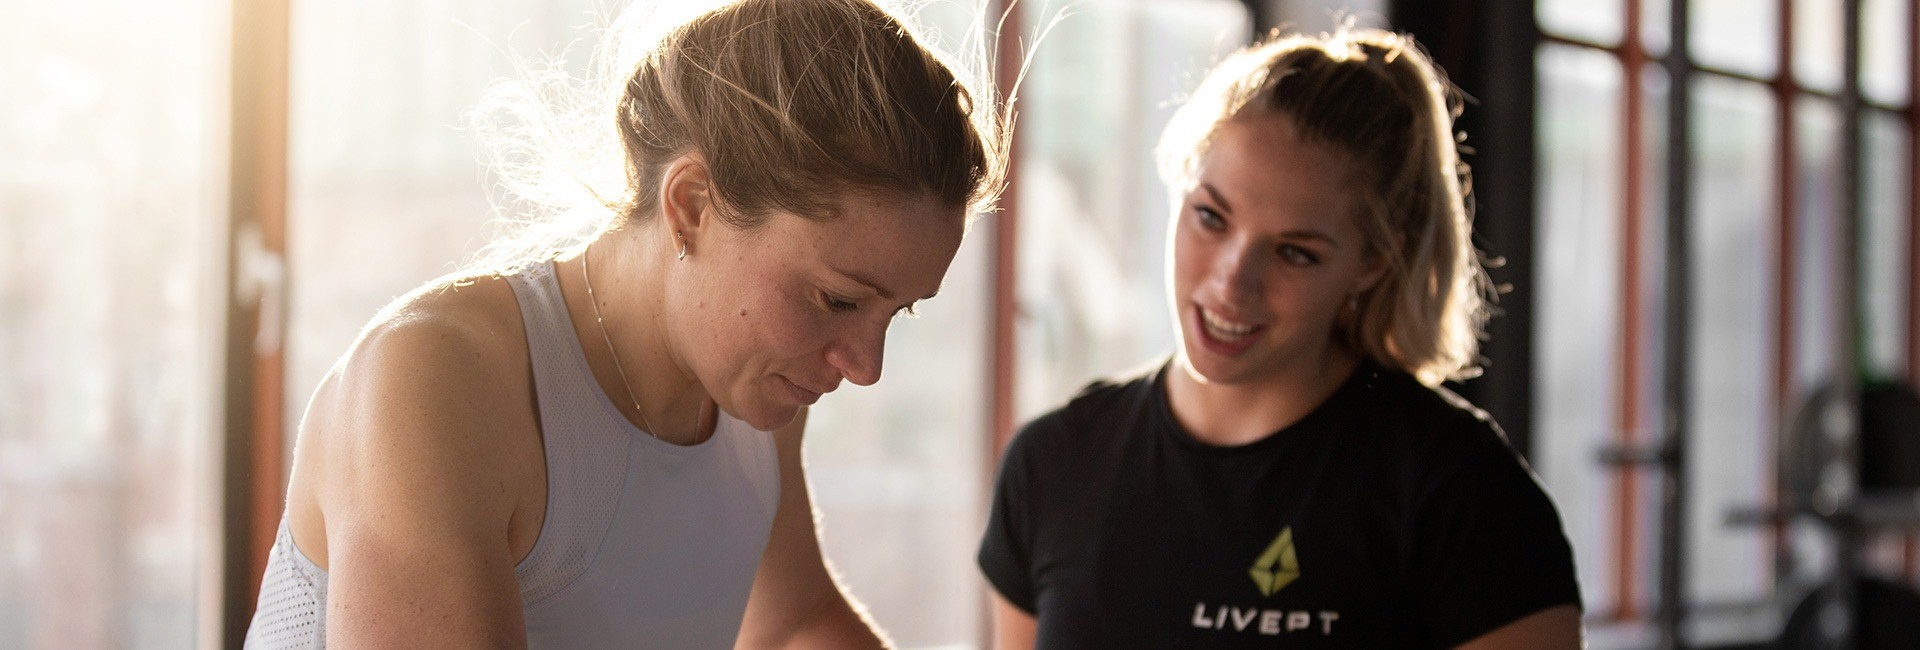 personal training in de personal fitness studio in het havenkwartier van schevieningen